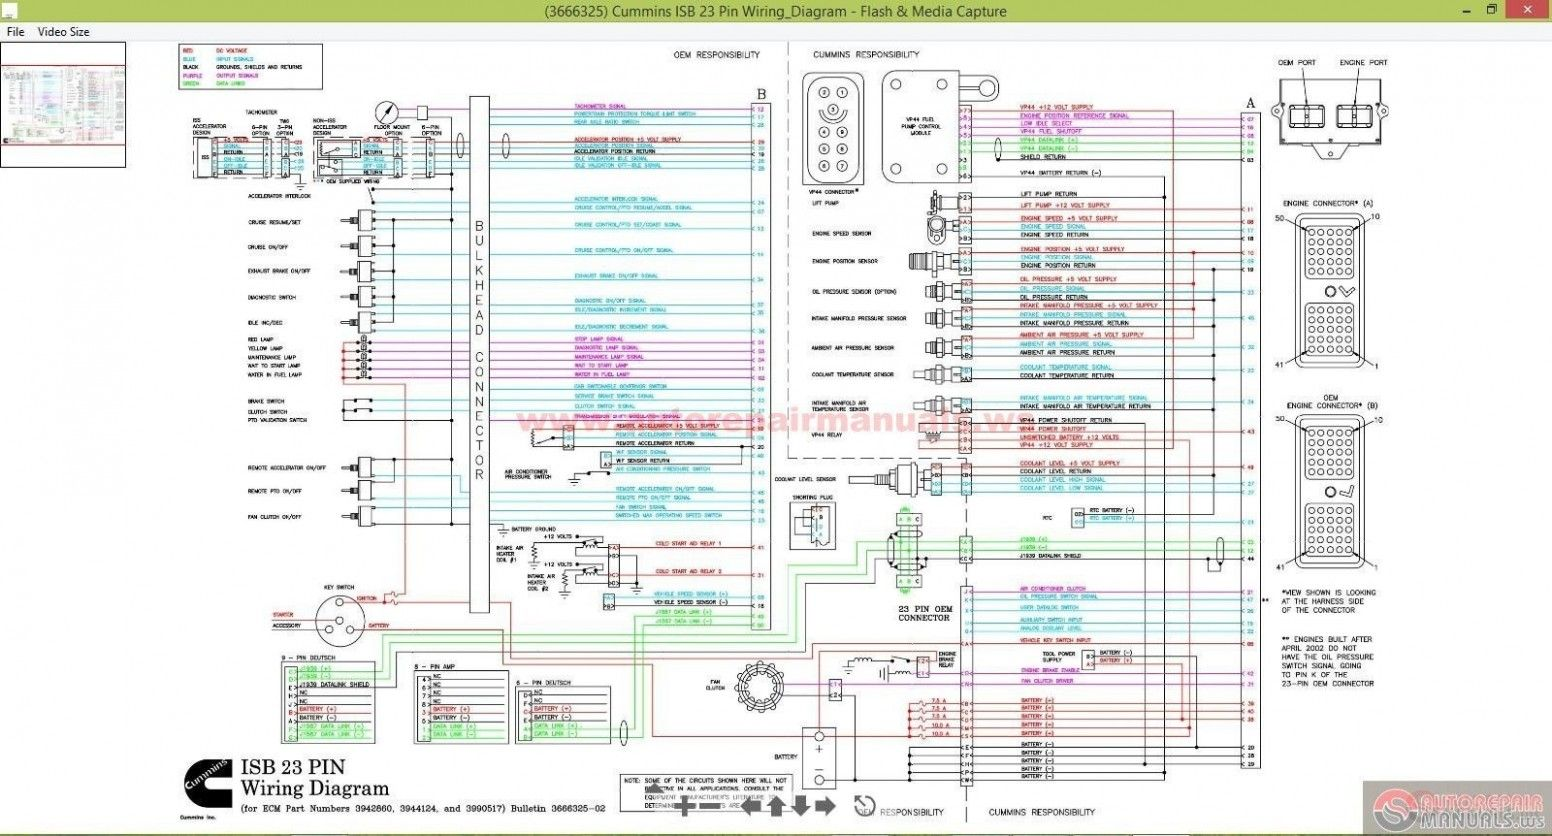 5e5 Cummins Isx Ecm Wiring Diagram Wiring Resources Cummins Isx Engine Wiring Diagram In 2020 Cummins Diagram Electrical Wiring Diagram